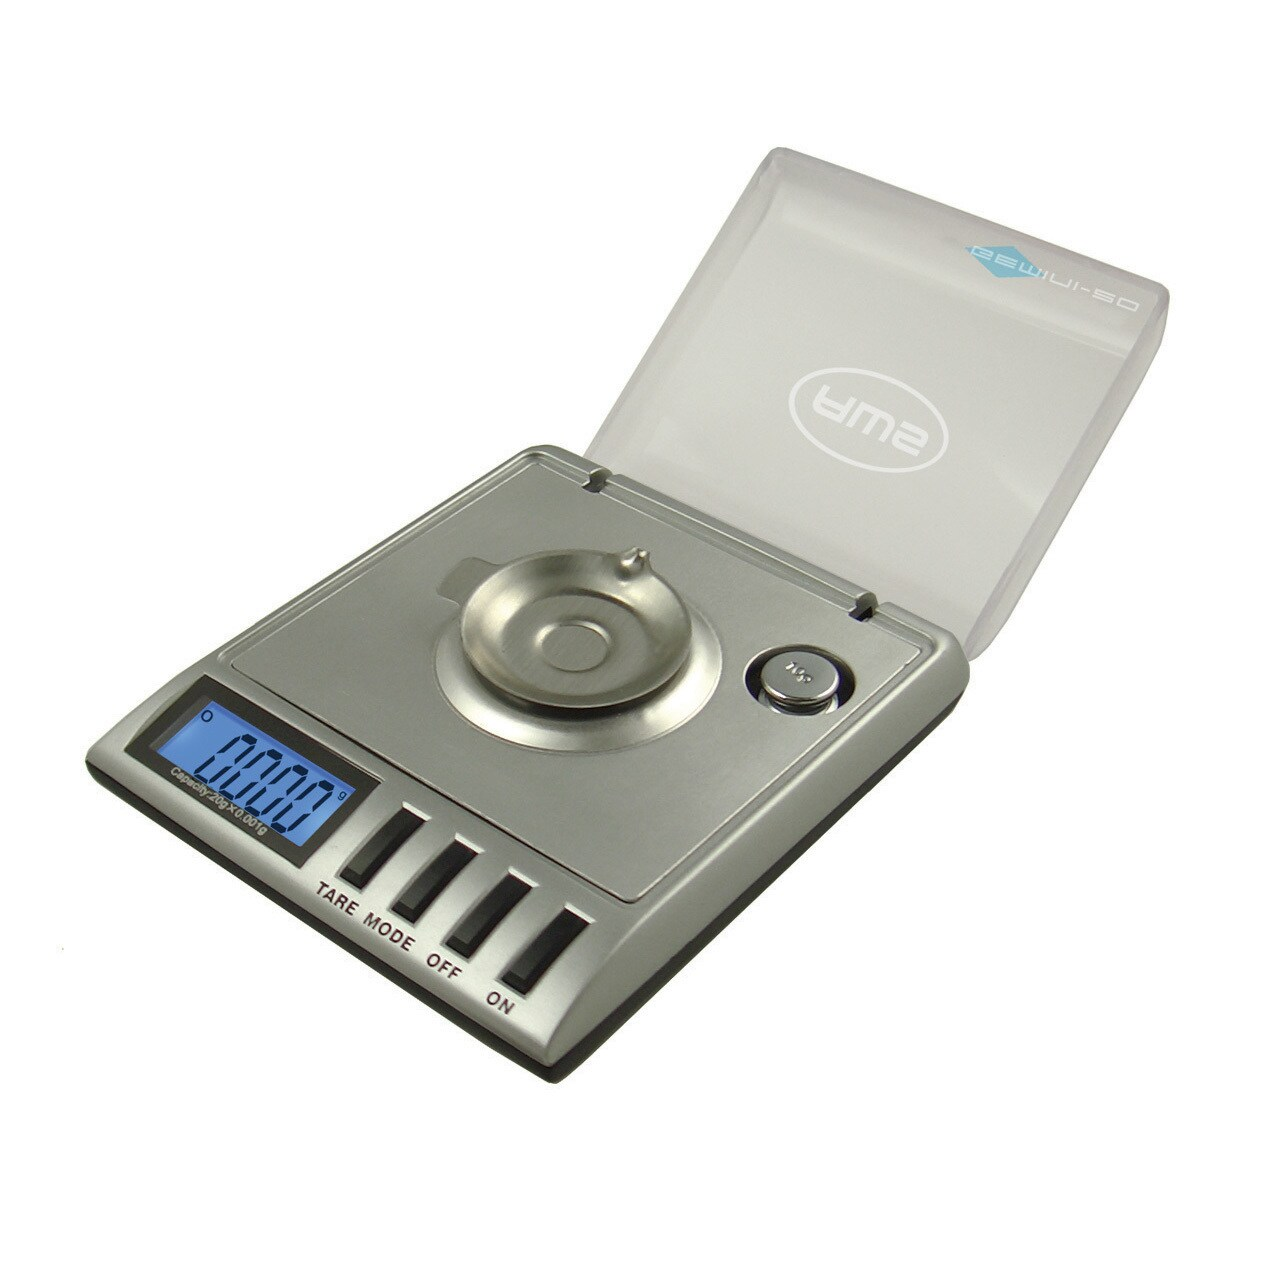 Overstock.com Precision Digital Scale